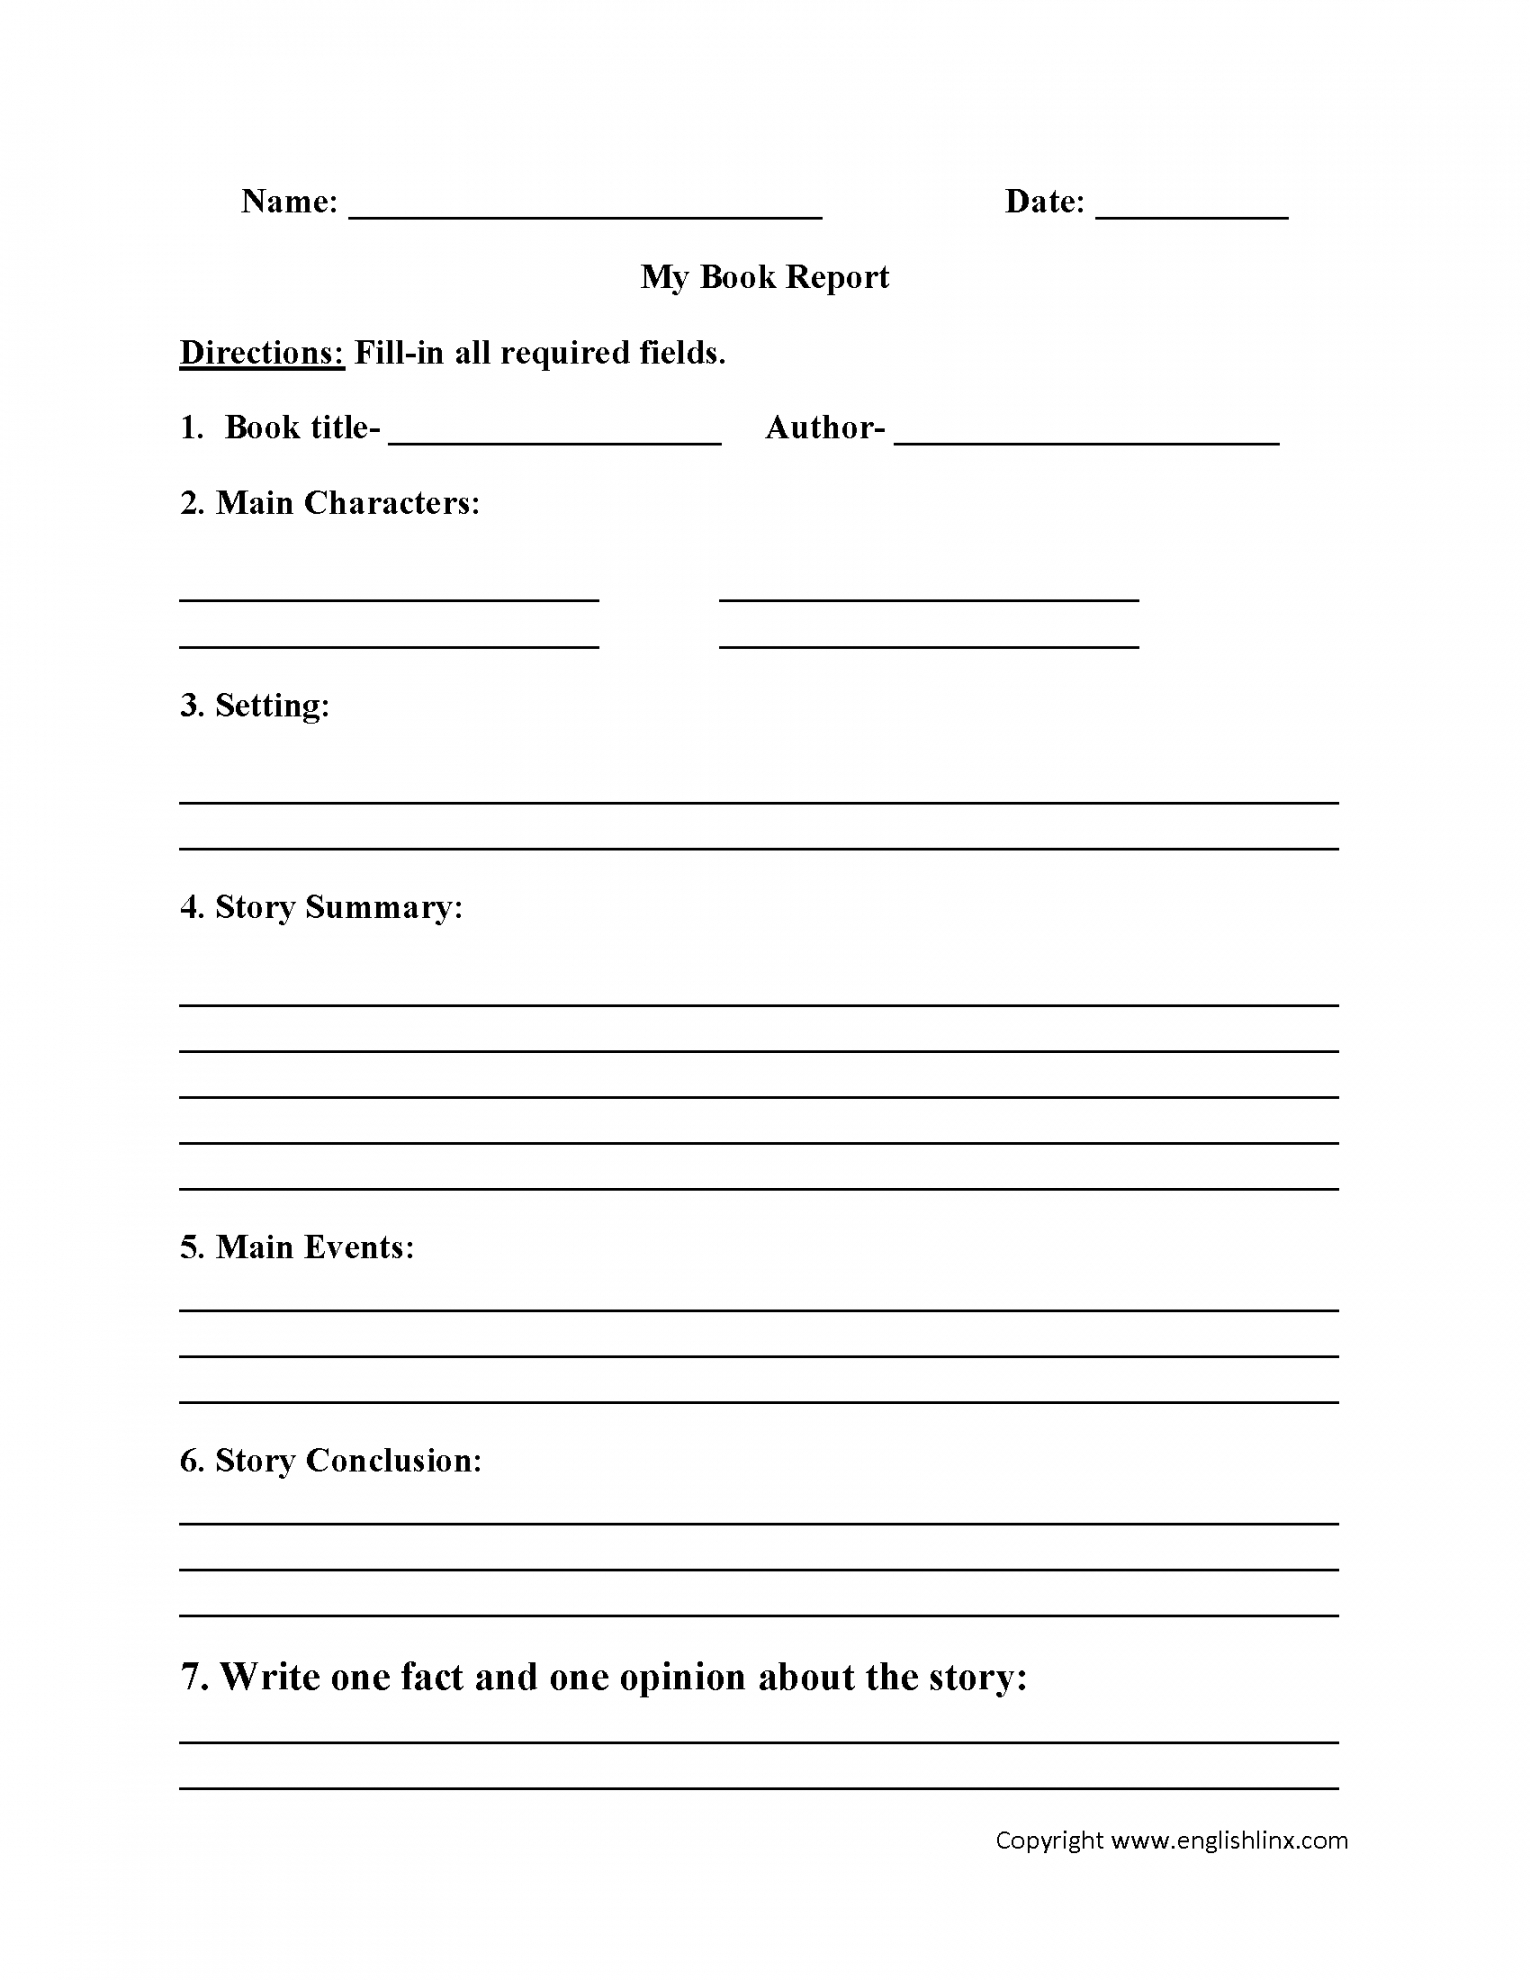 Book Report Template 8Th Grade With Megger Test Report Template